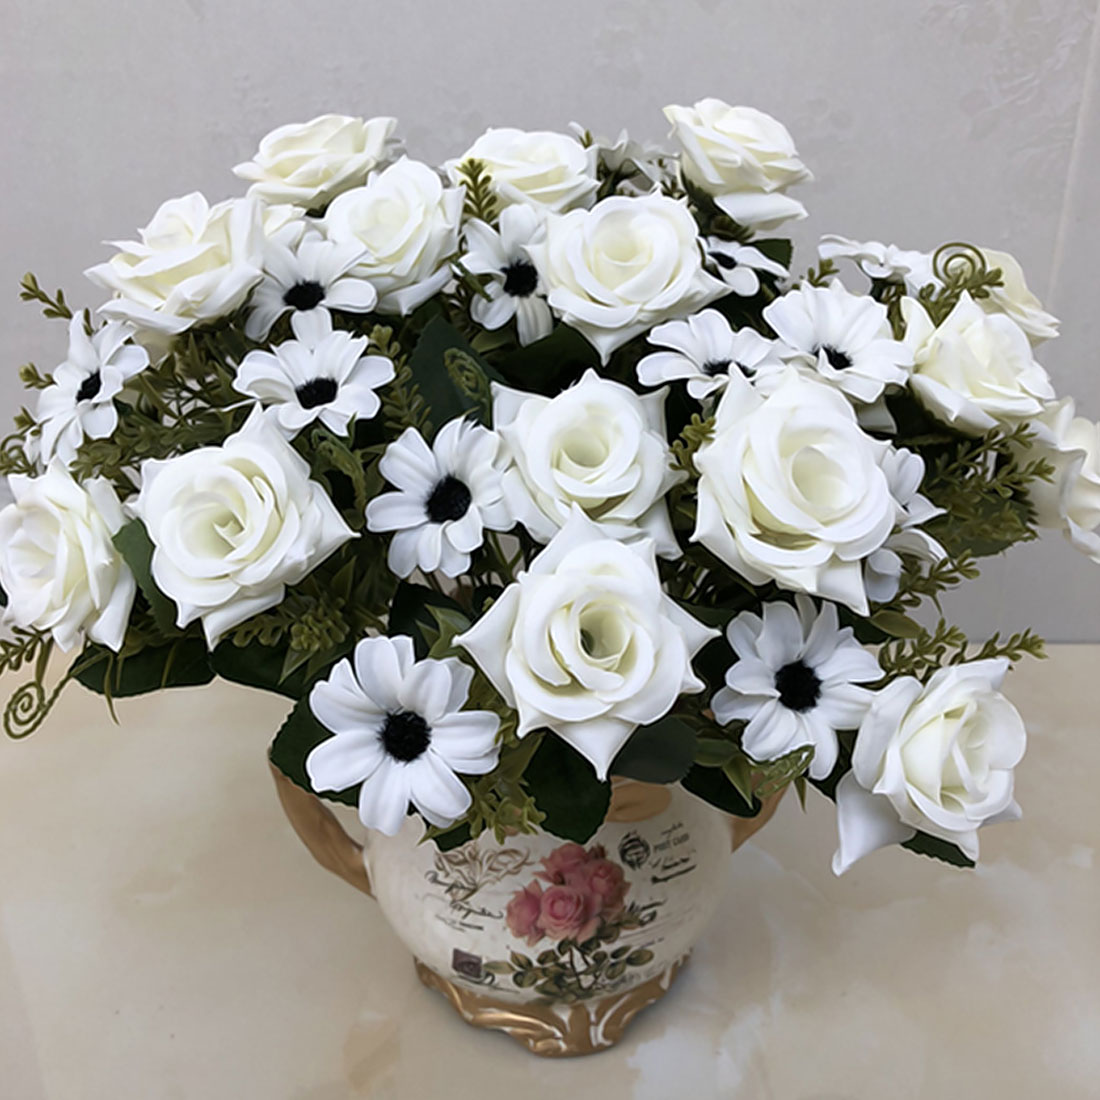 Lowered French Rose 1 Bunch Artificial Floral Bouquet Fake Silk